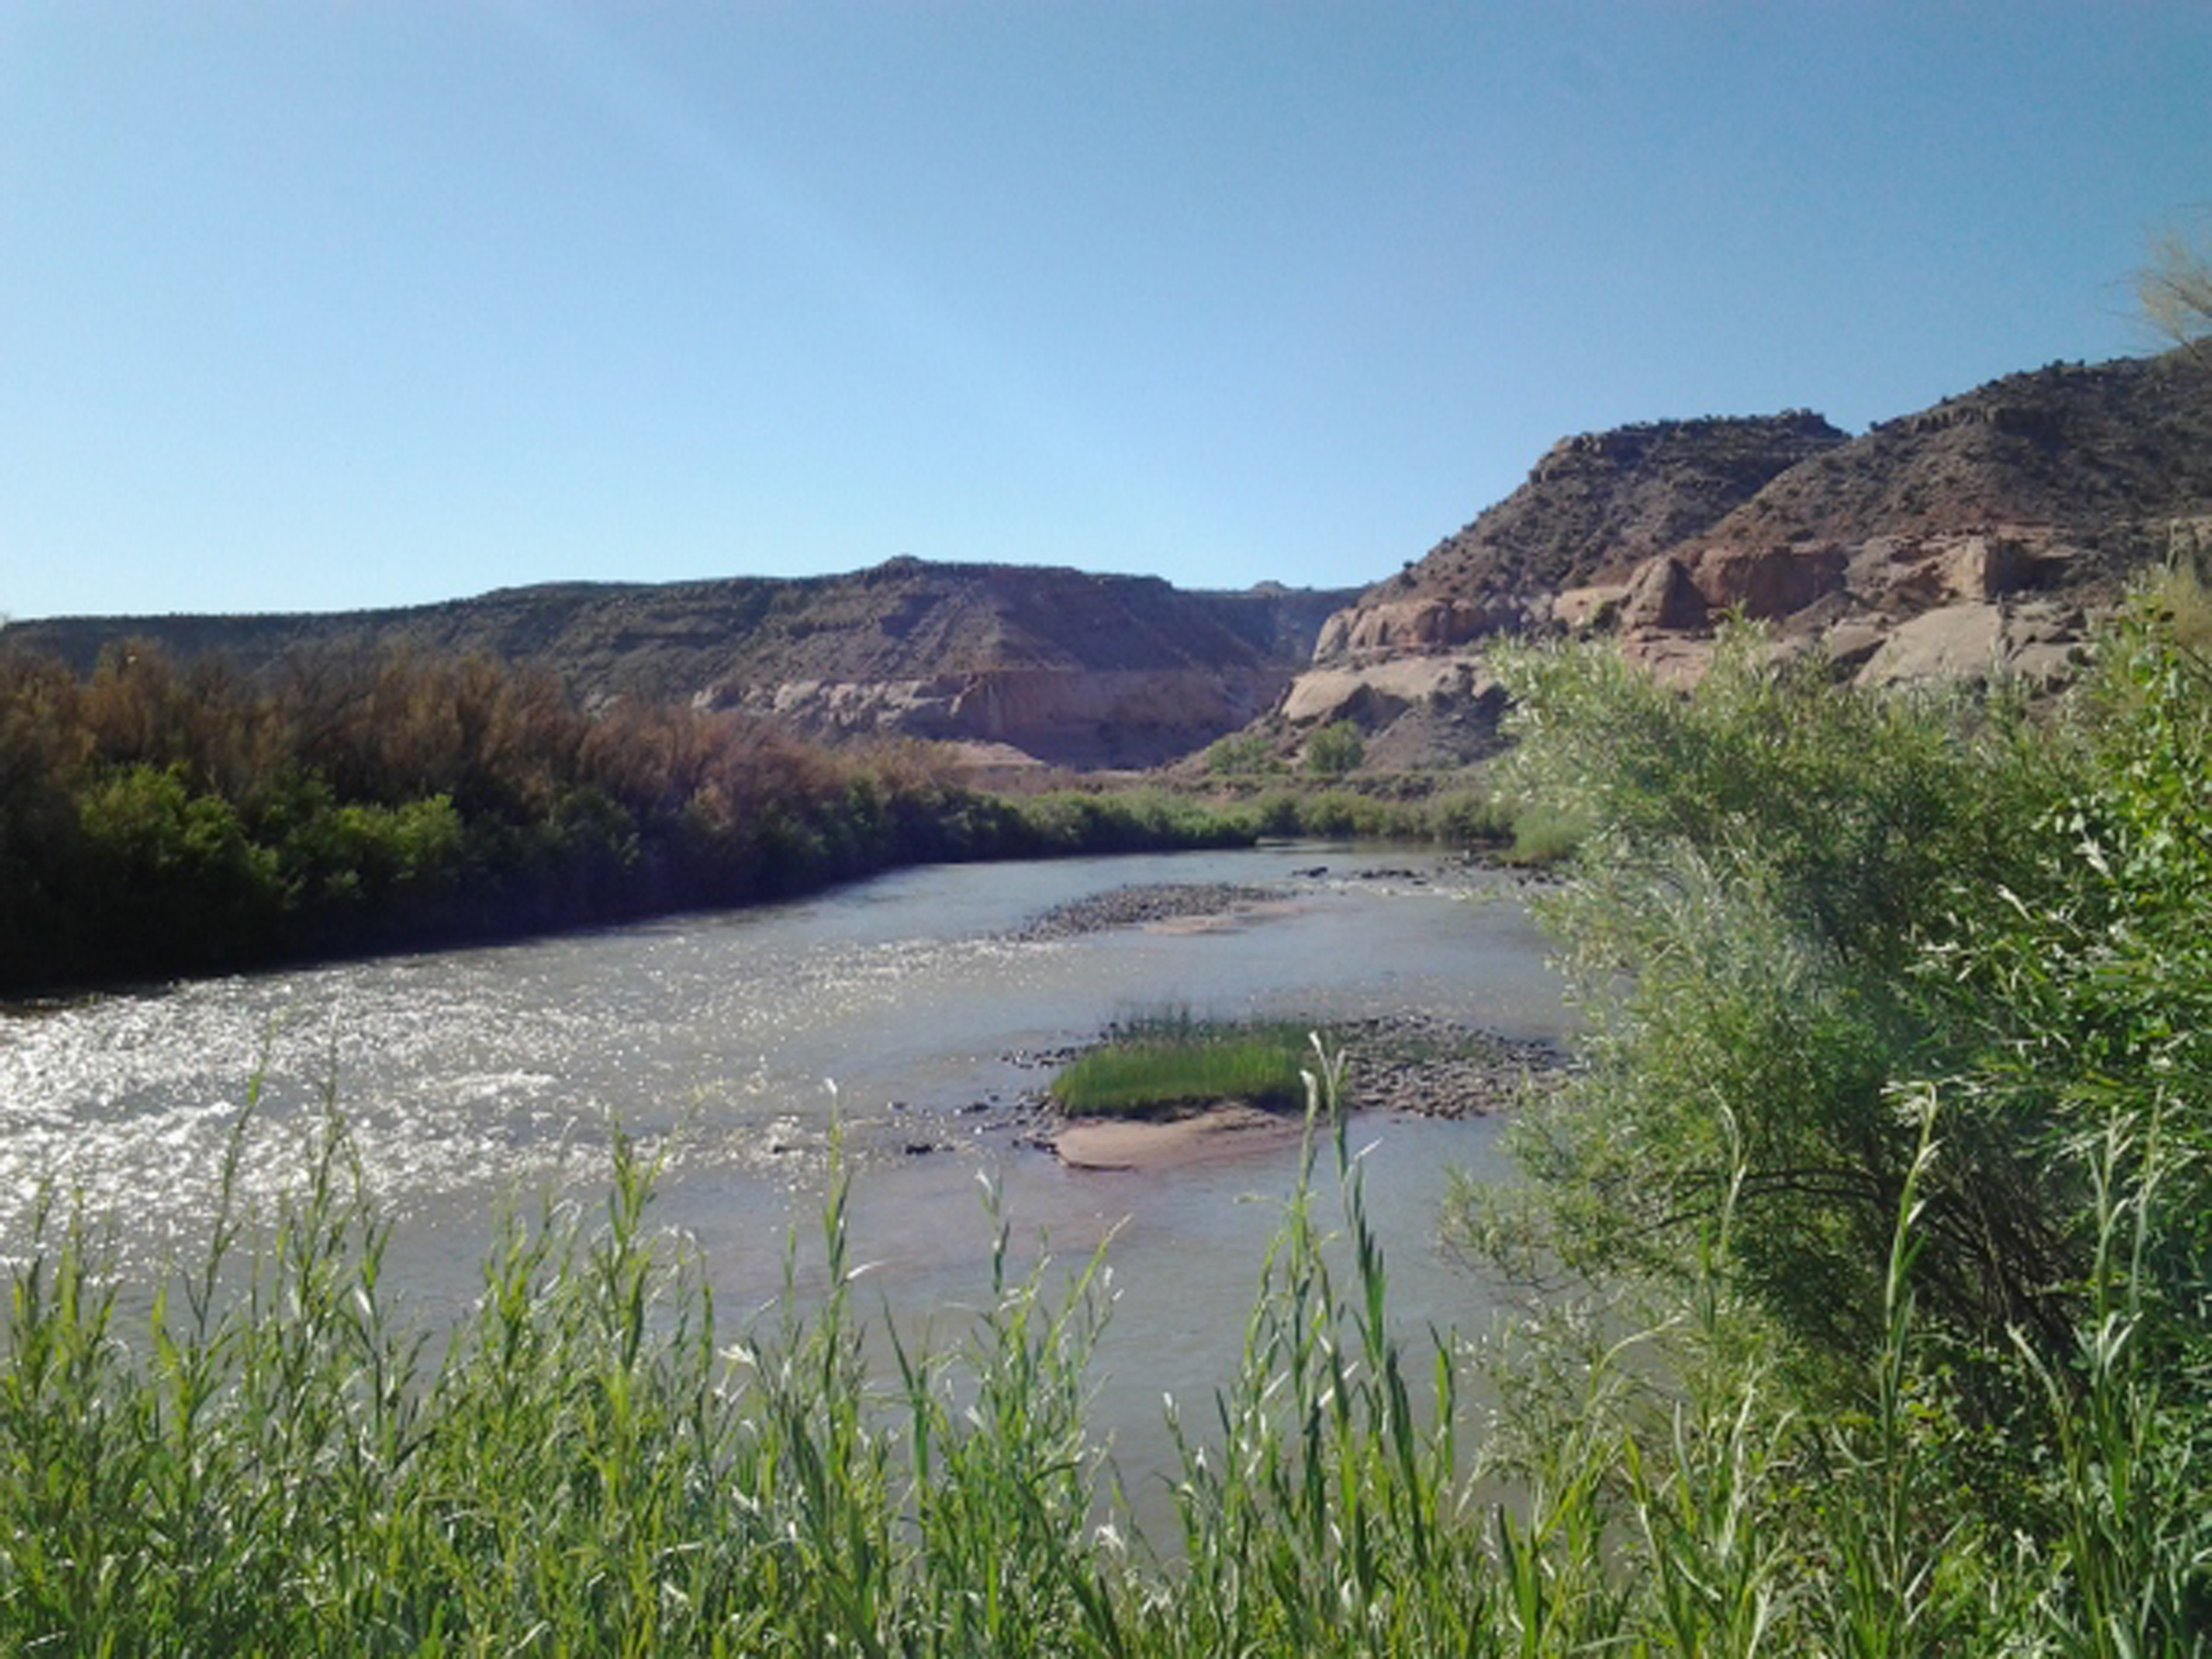 Lush riparian habitat along the Dolores River provides significant research opportunities at the University of Utah's Rio Mesa Center.